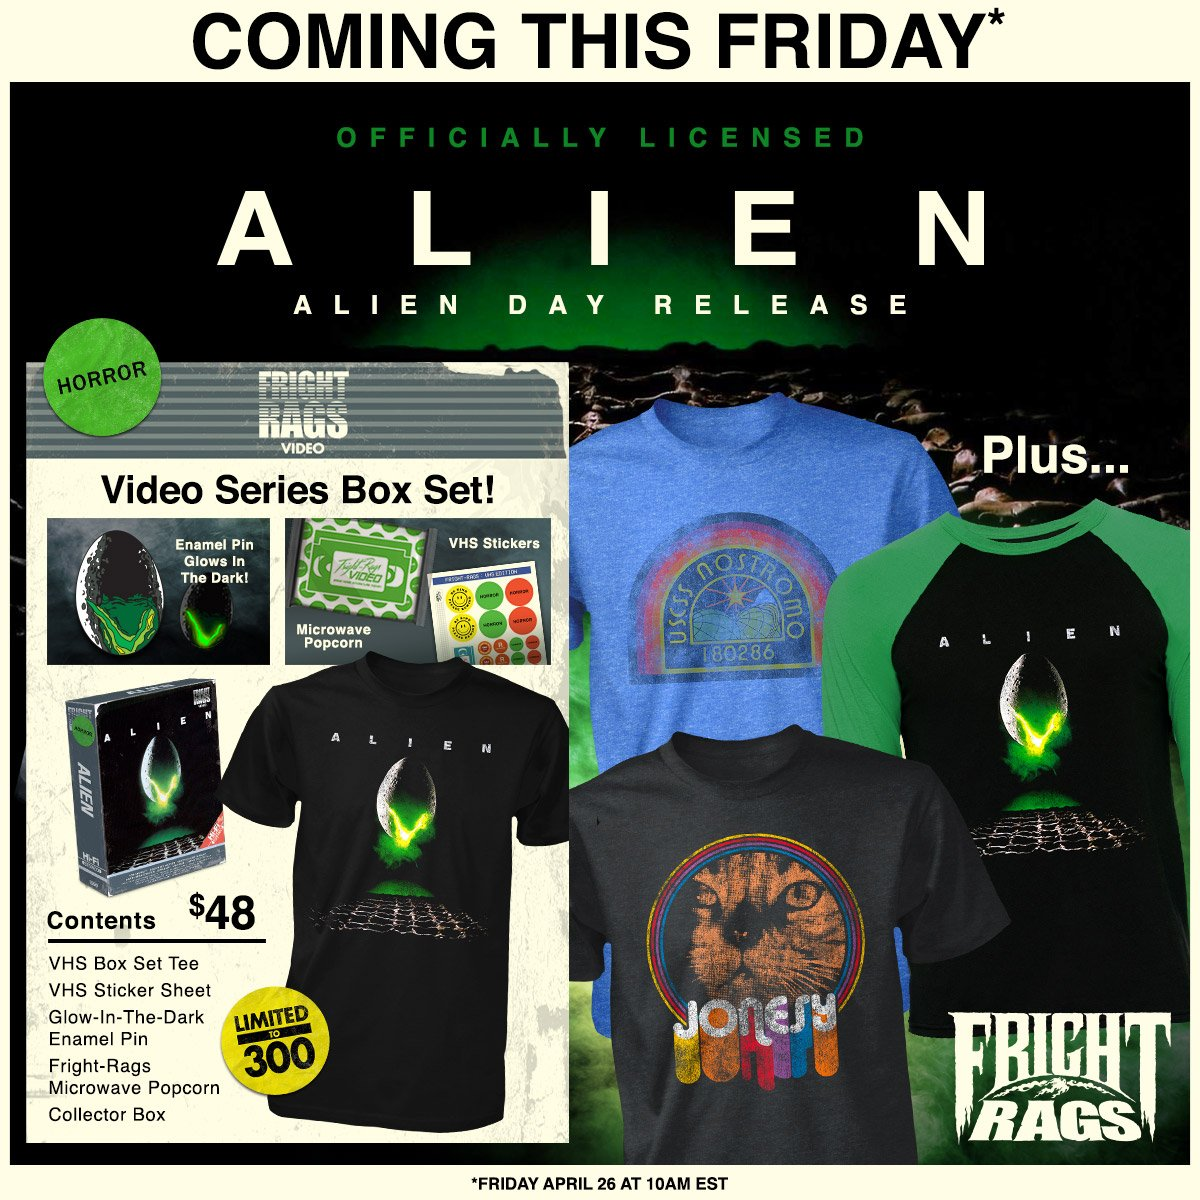 Alien Day 2019 - New Items, Exclusives, Announcements, Sales